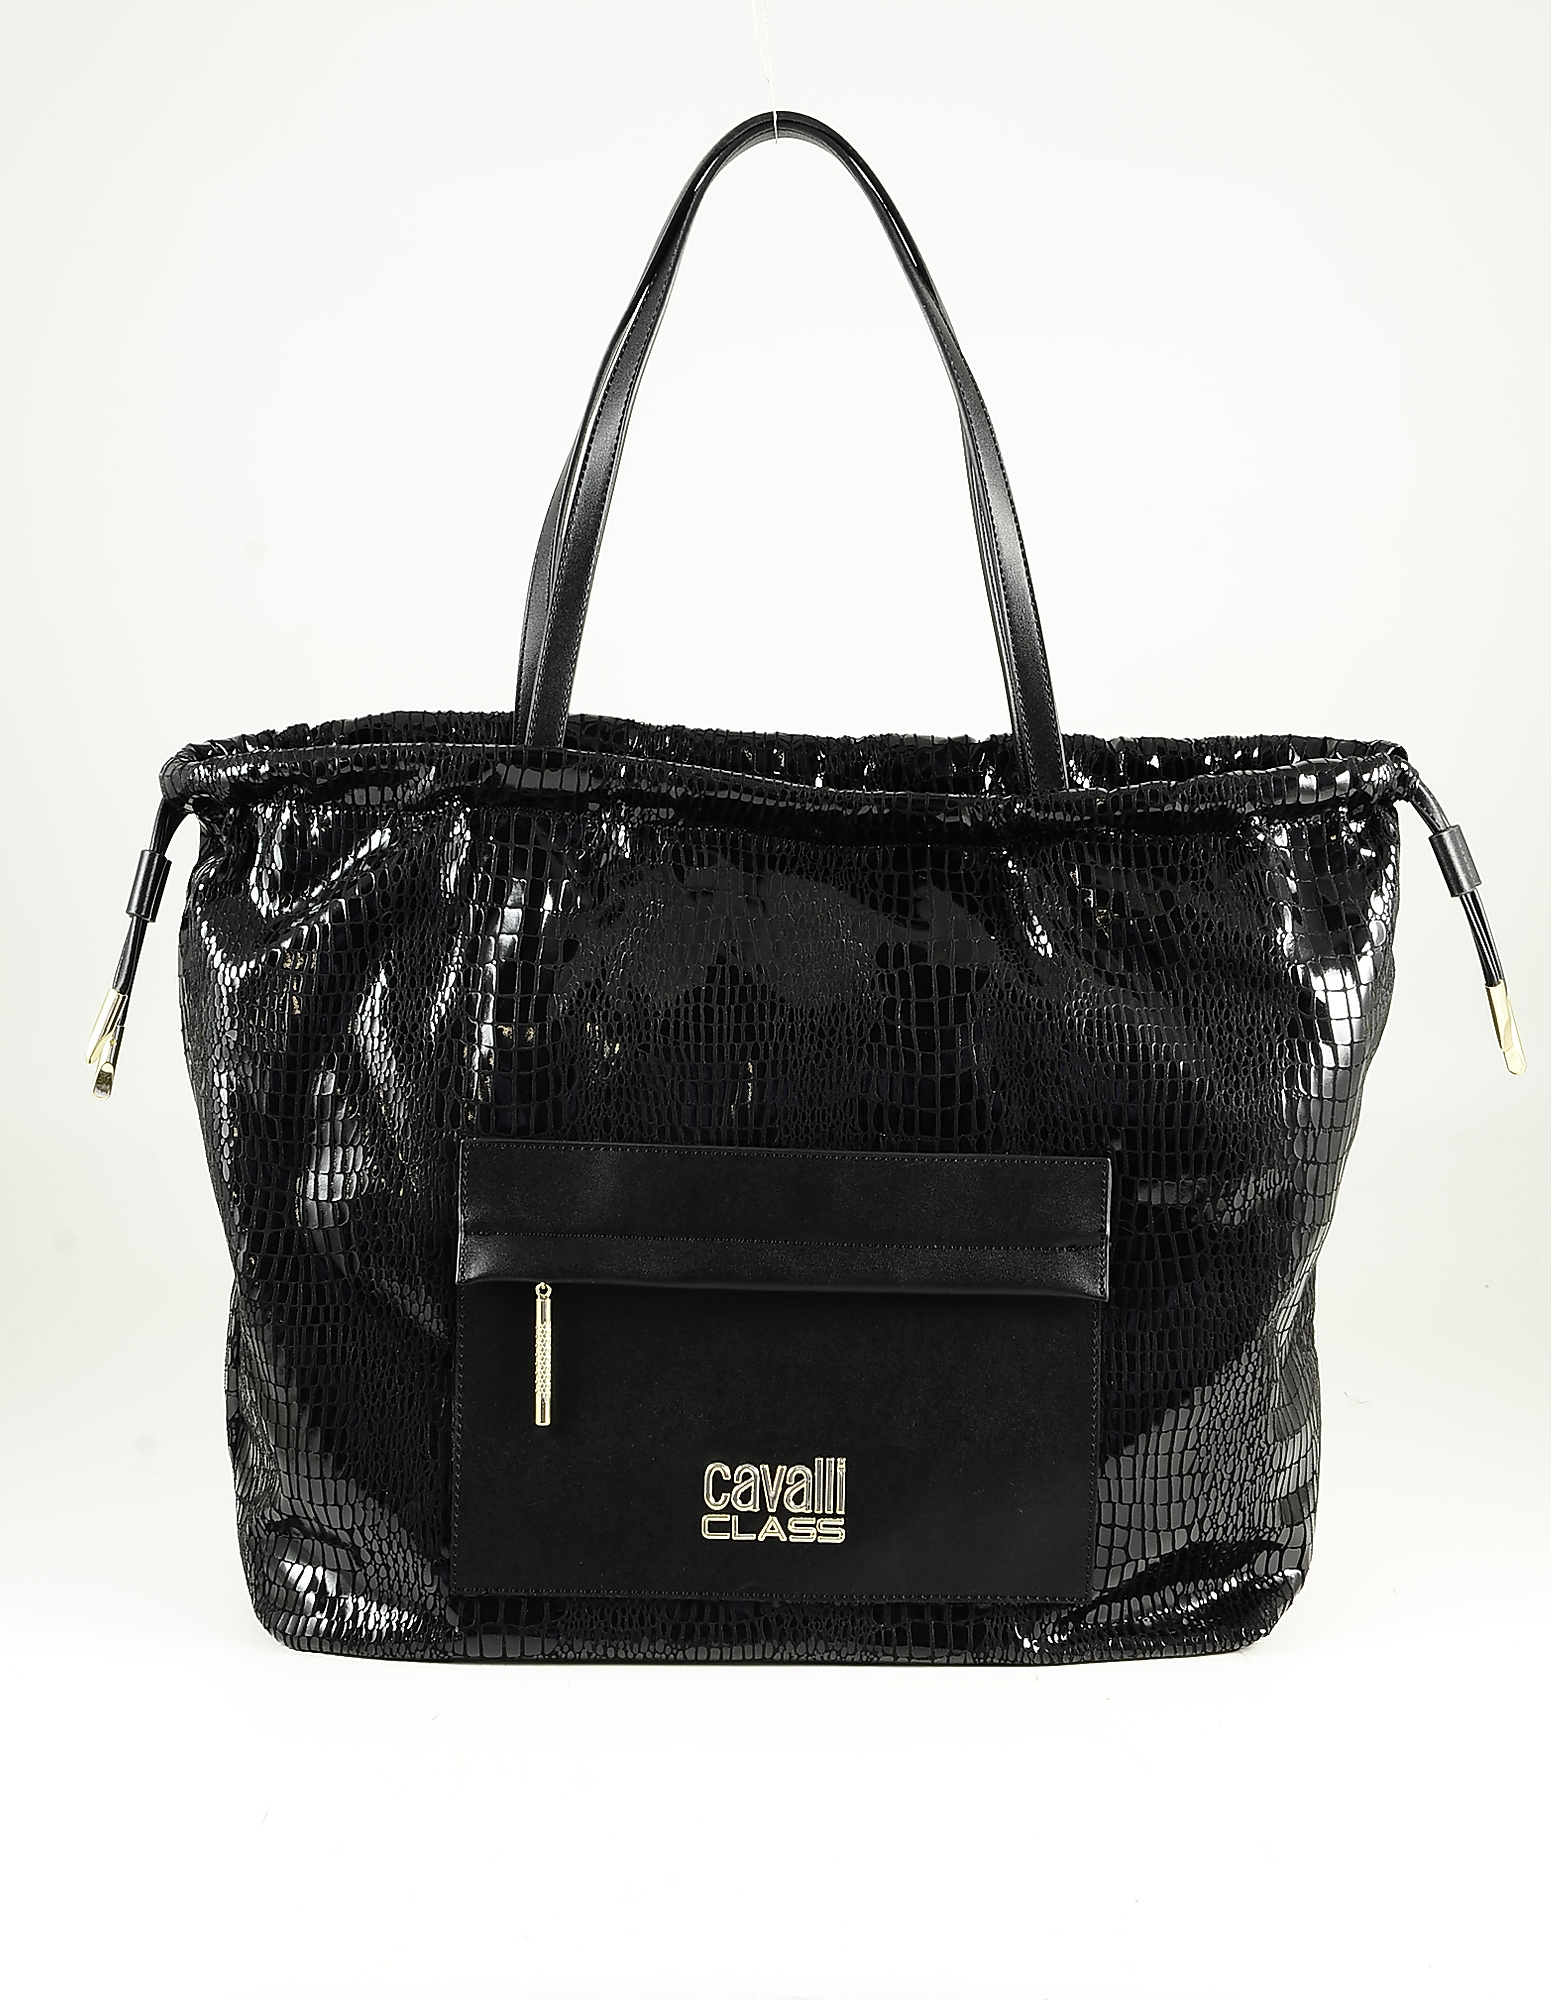 Class Roberto Cavalli Black Embosse Eco-leather Tote Bag